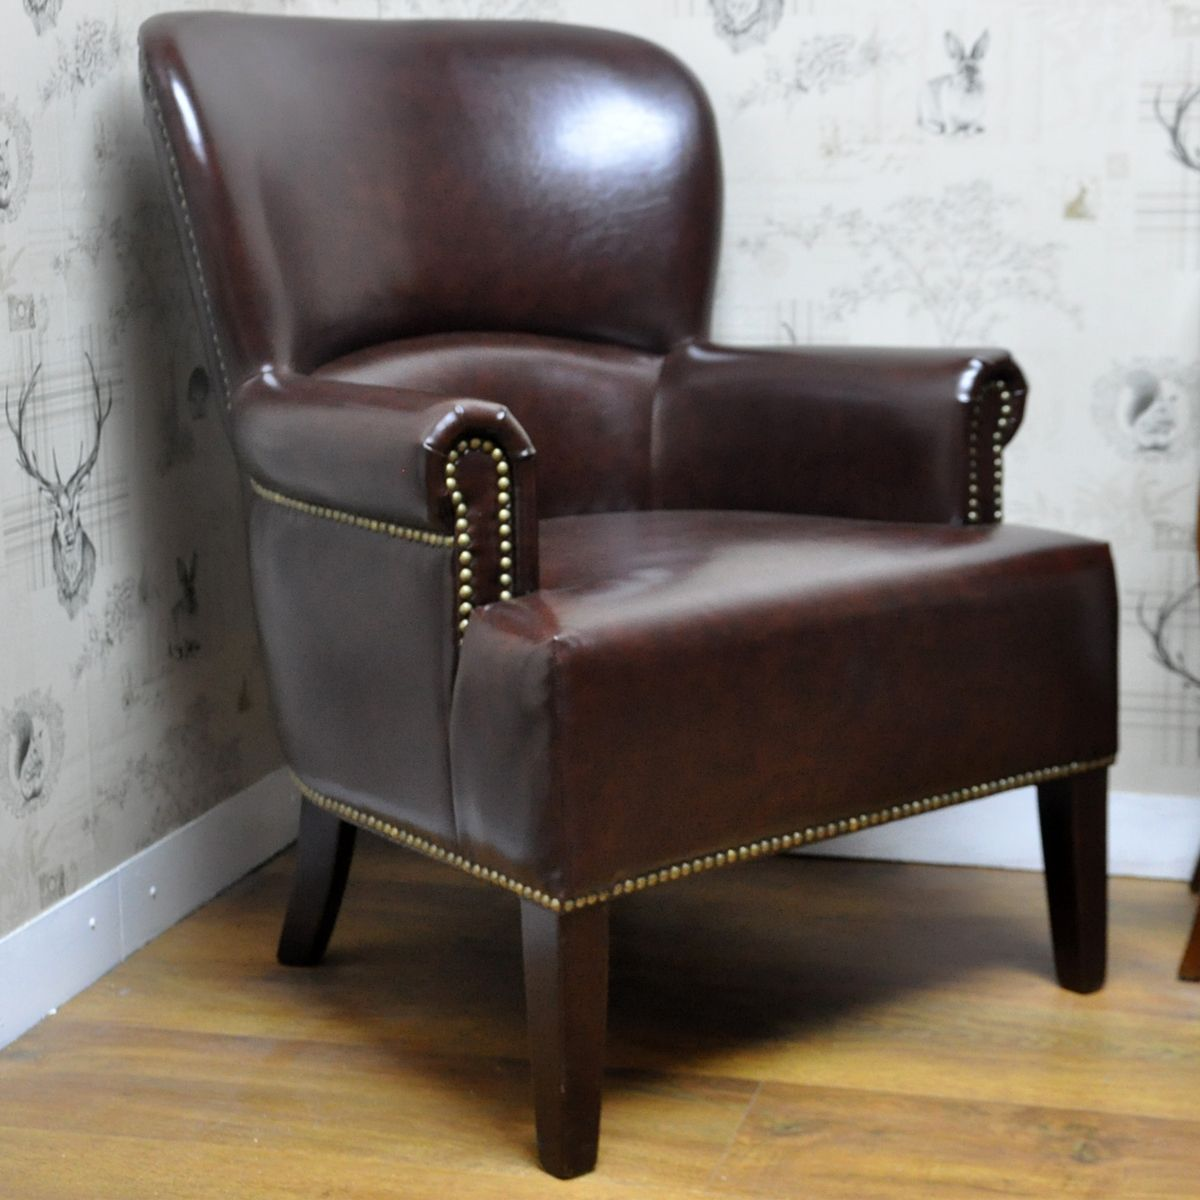 Brown Leather Studded Arm Chair | Winged armchair ...